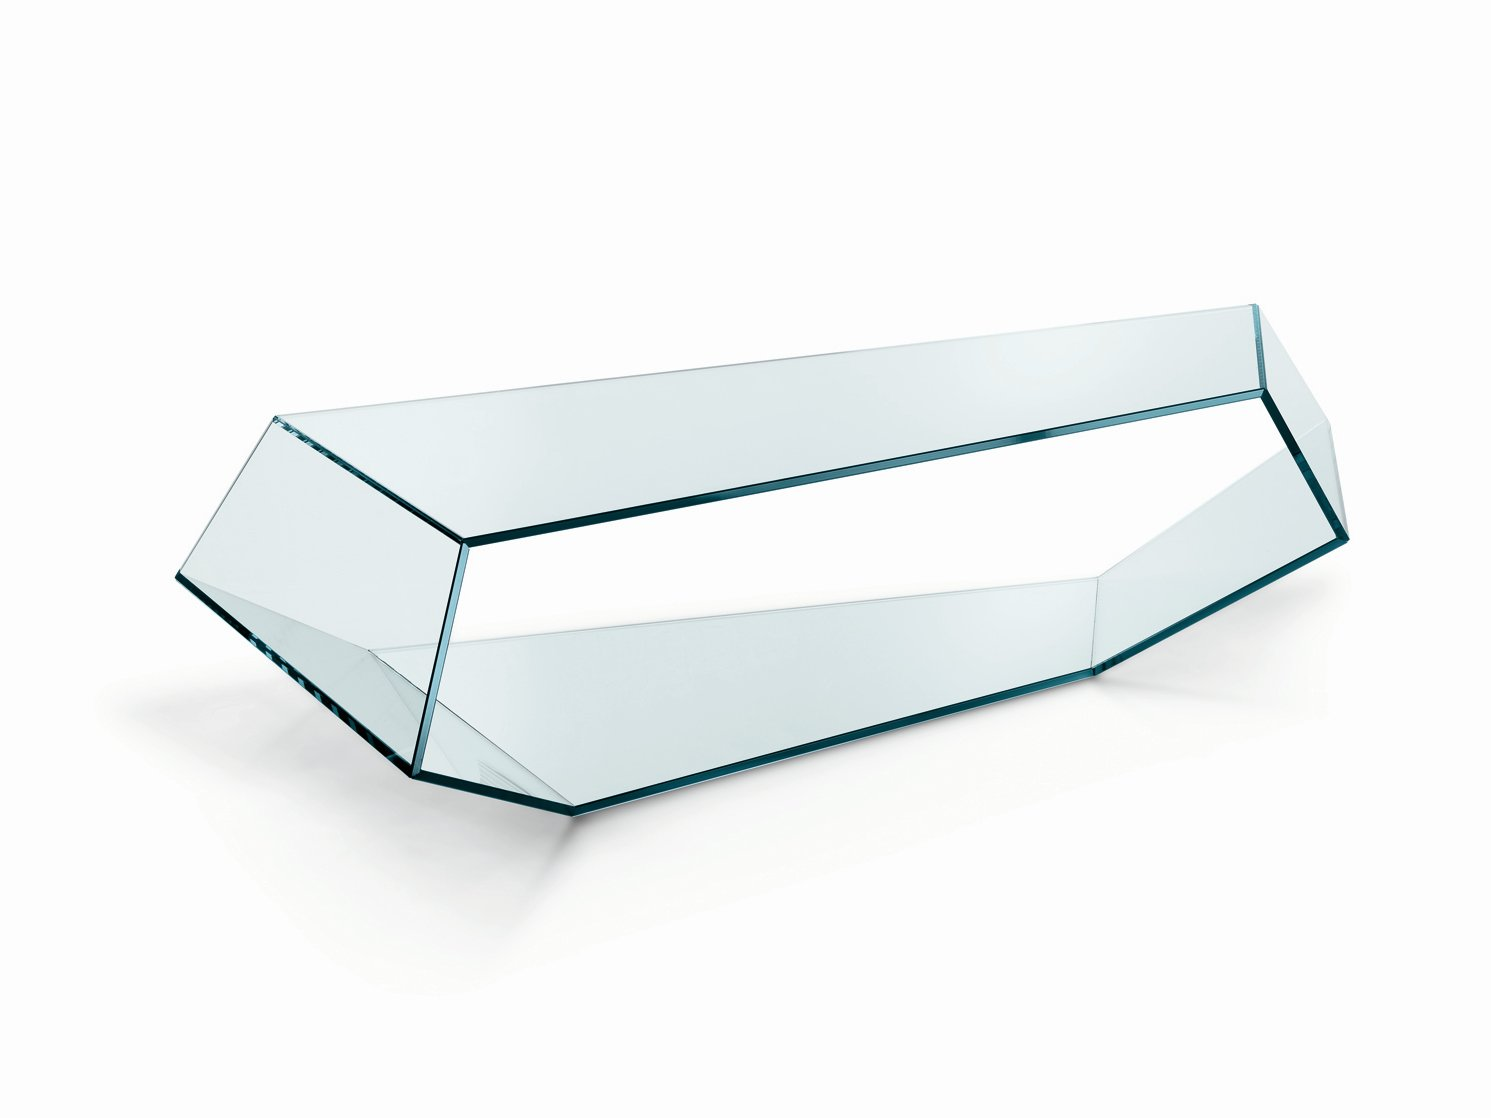 Table basse en verre dekon 2 by t d tonelli design design karim rashid - Table basse verre design ...